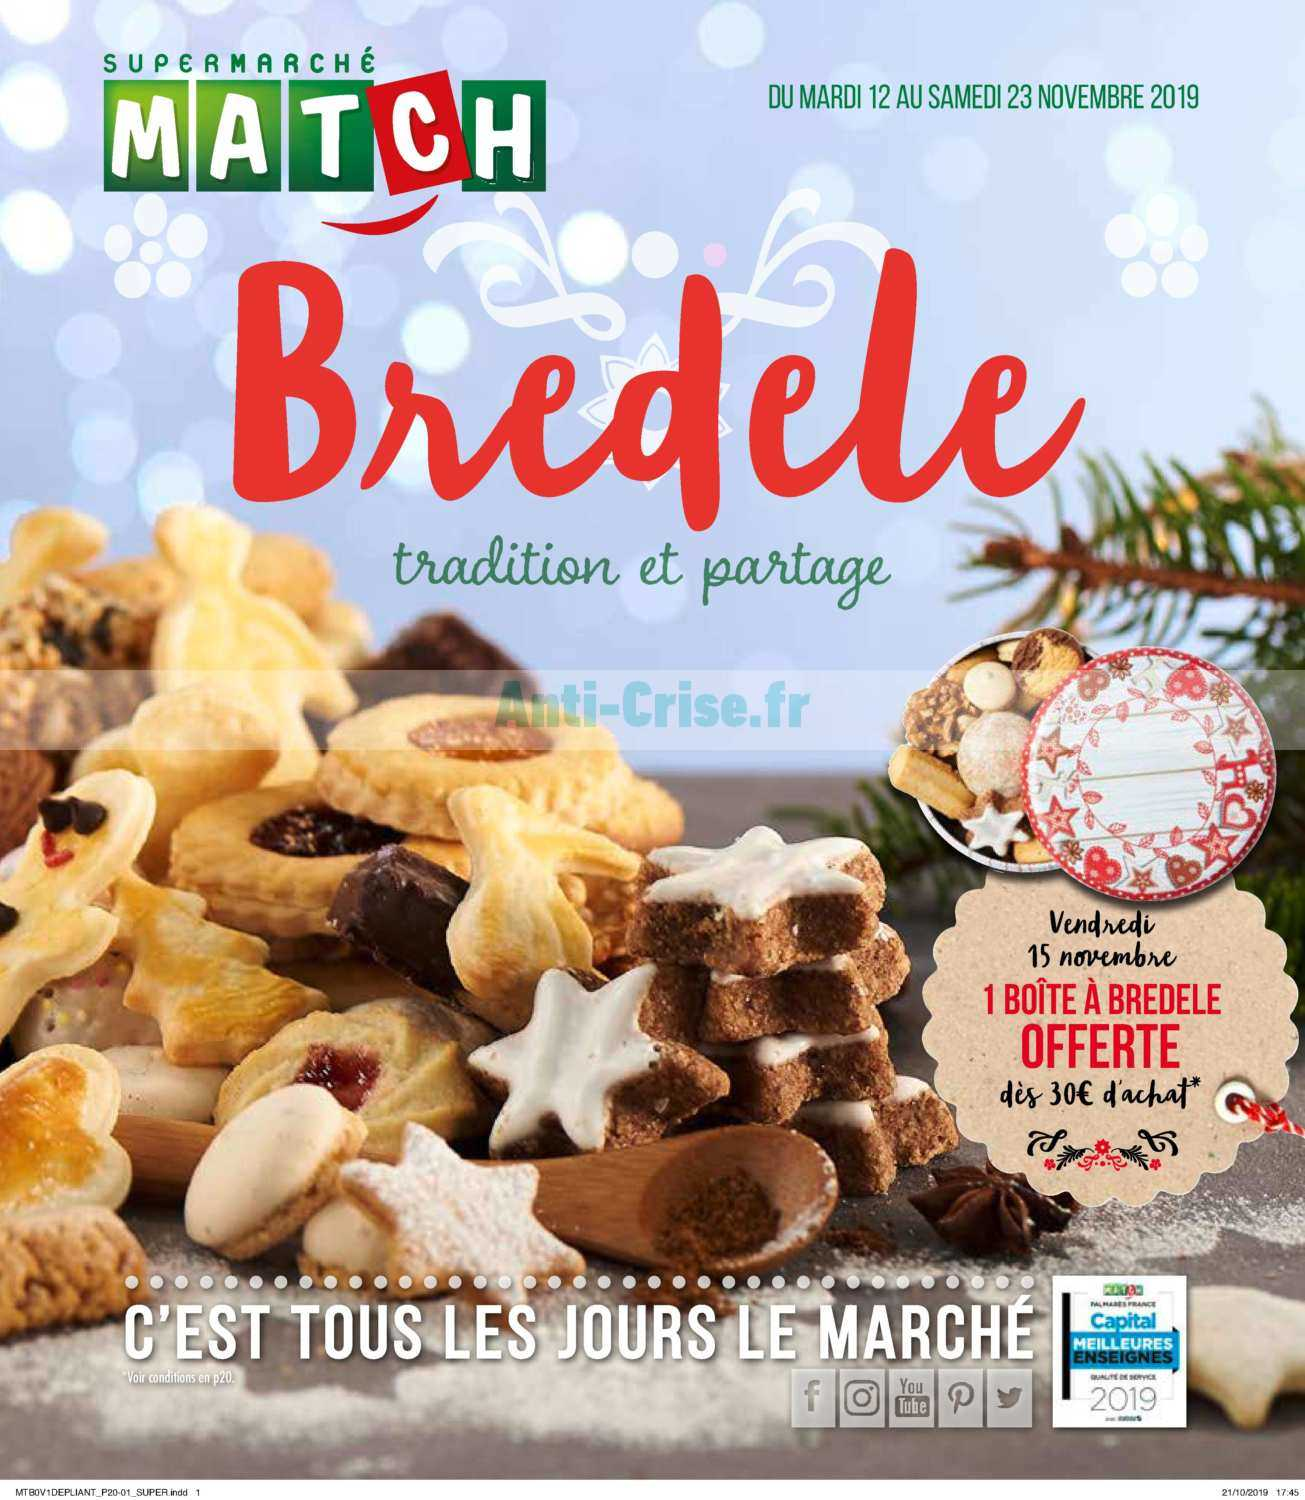 https://media.anti-crise.fr/2019/11/novembre2019match1211201923112019S0C0Bredele-1-261x300.jpg